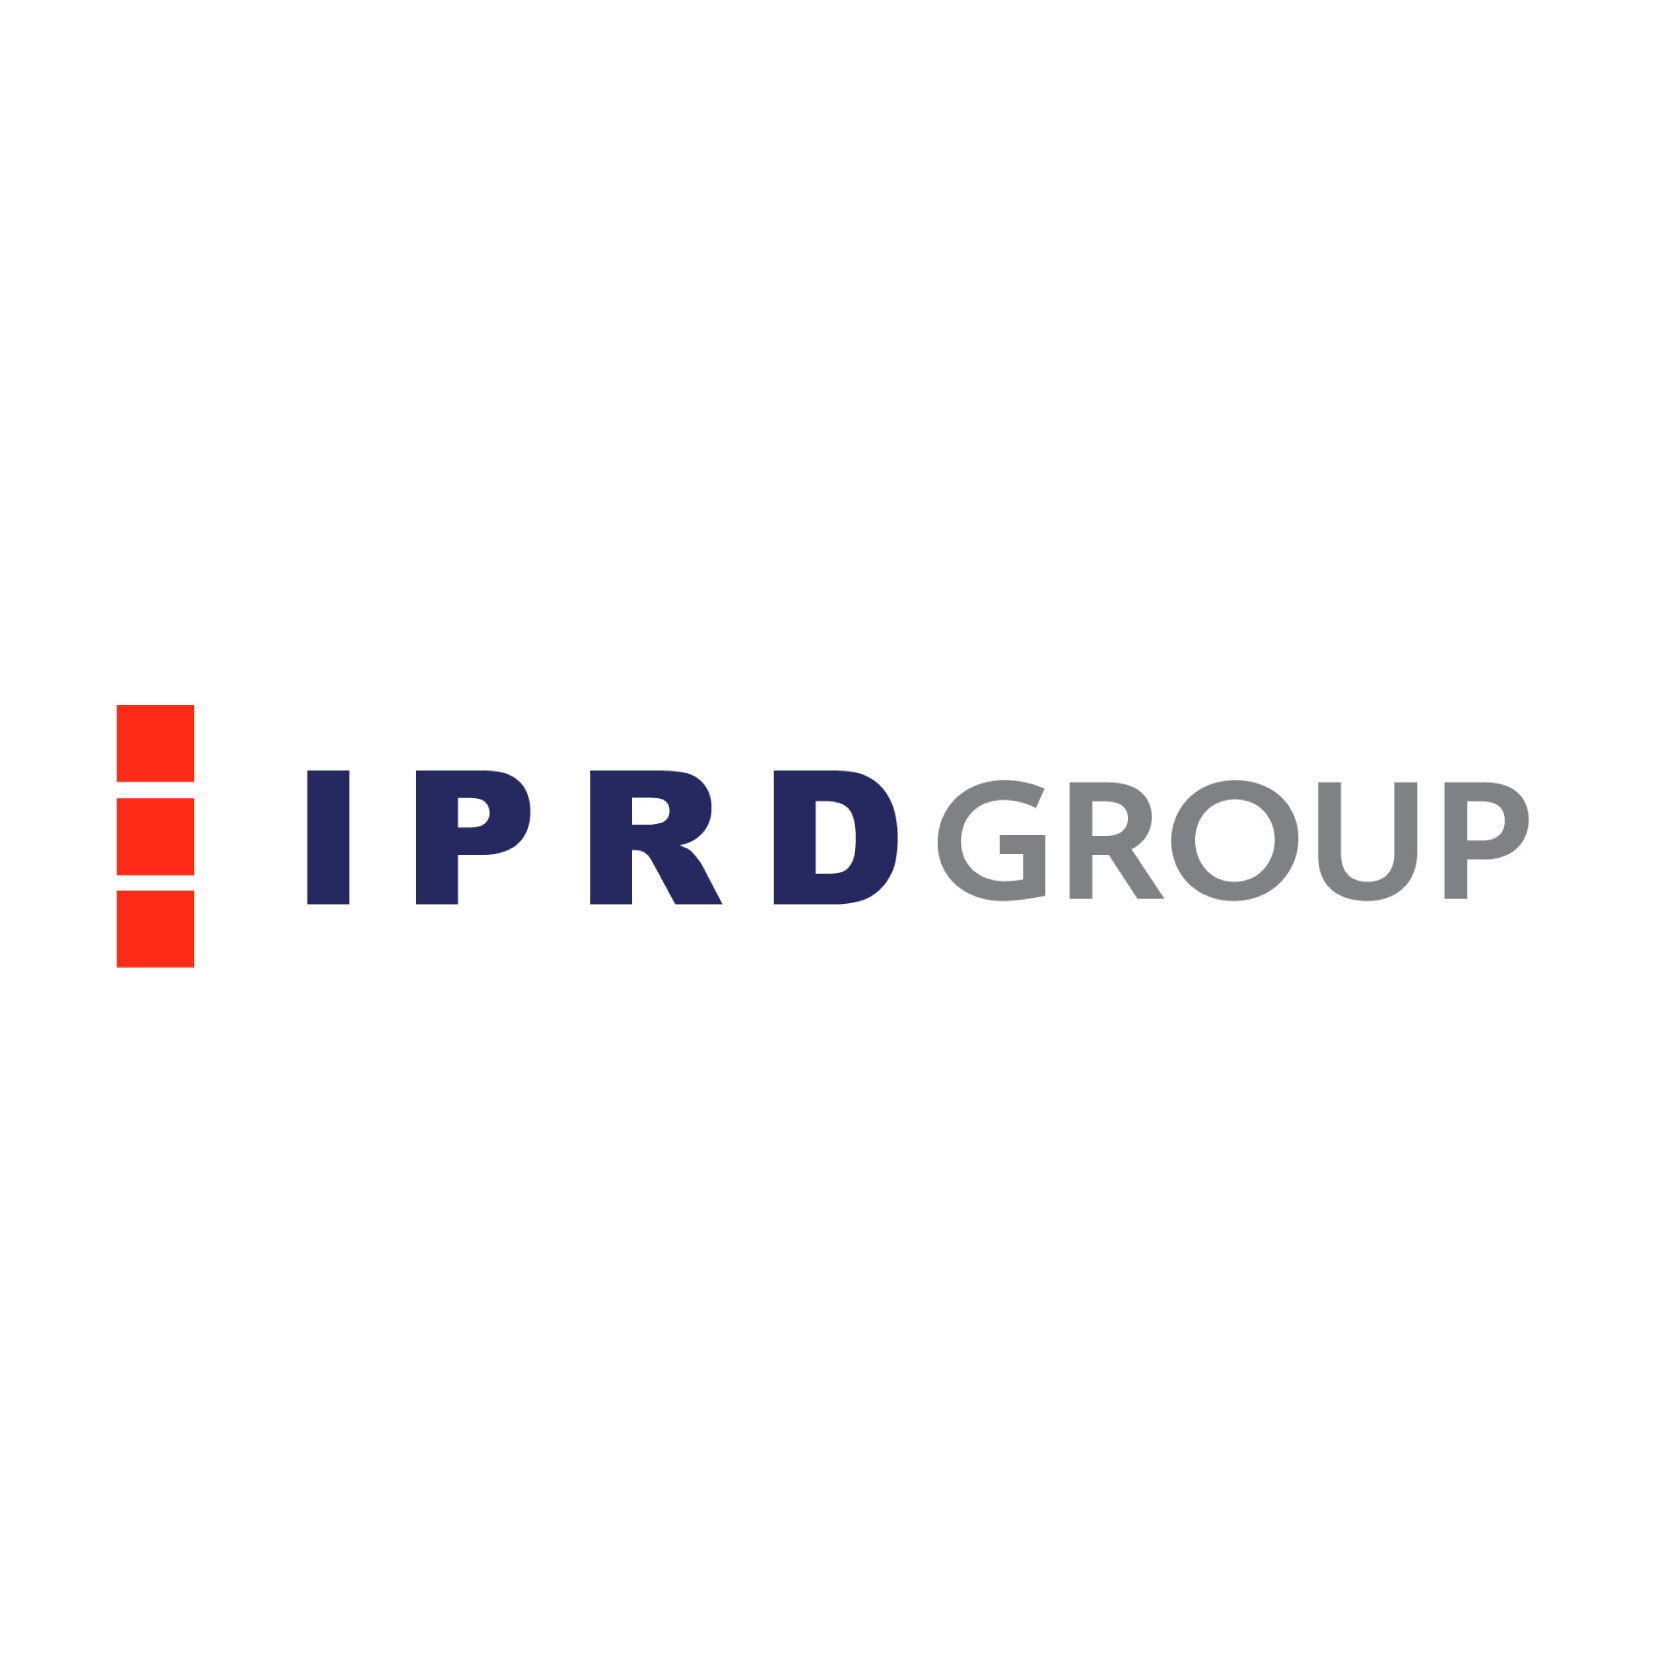 IPRD Group